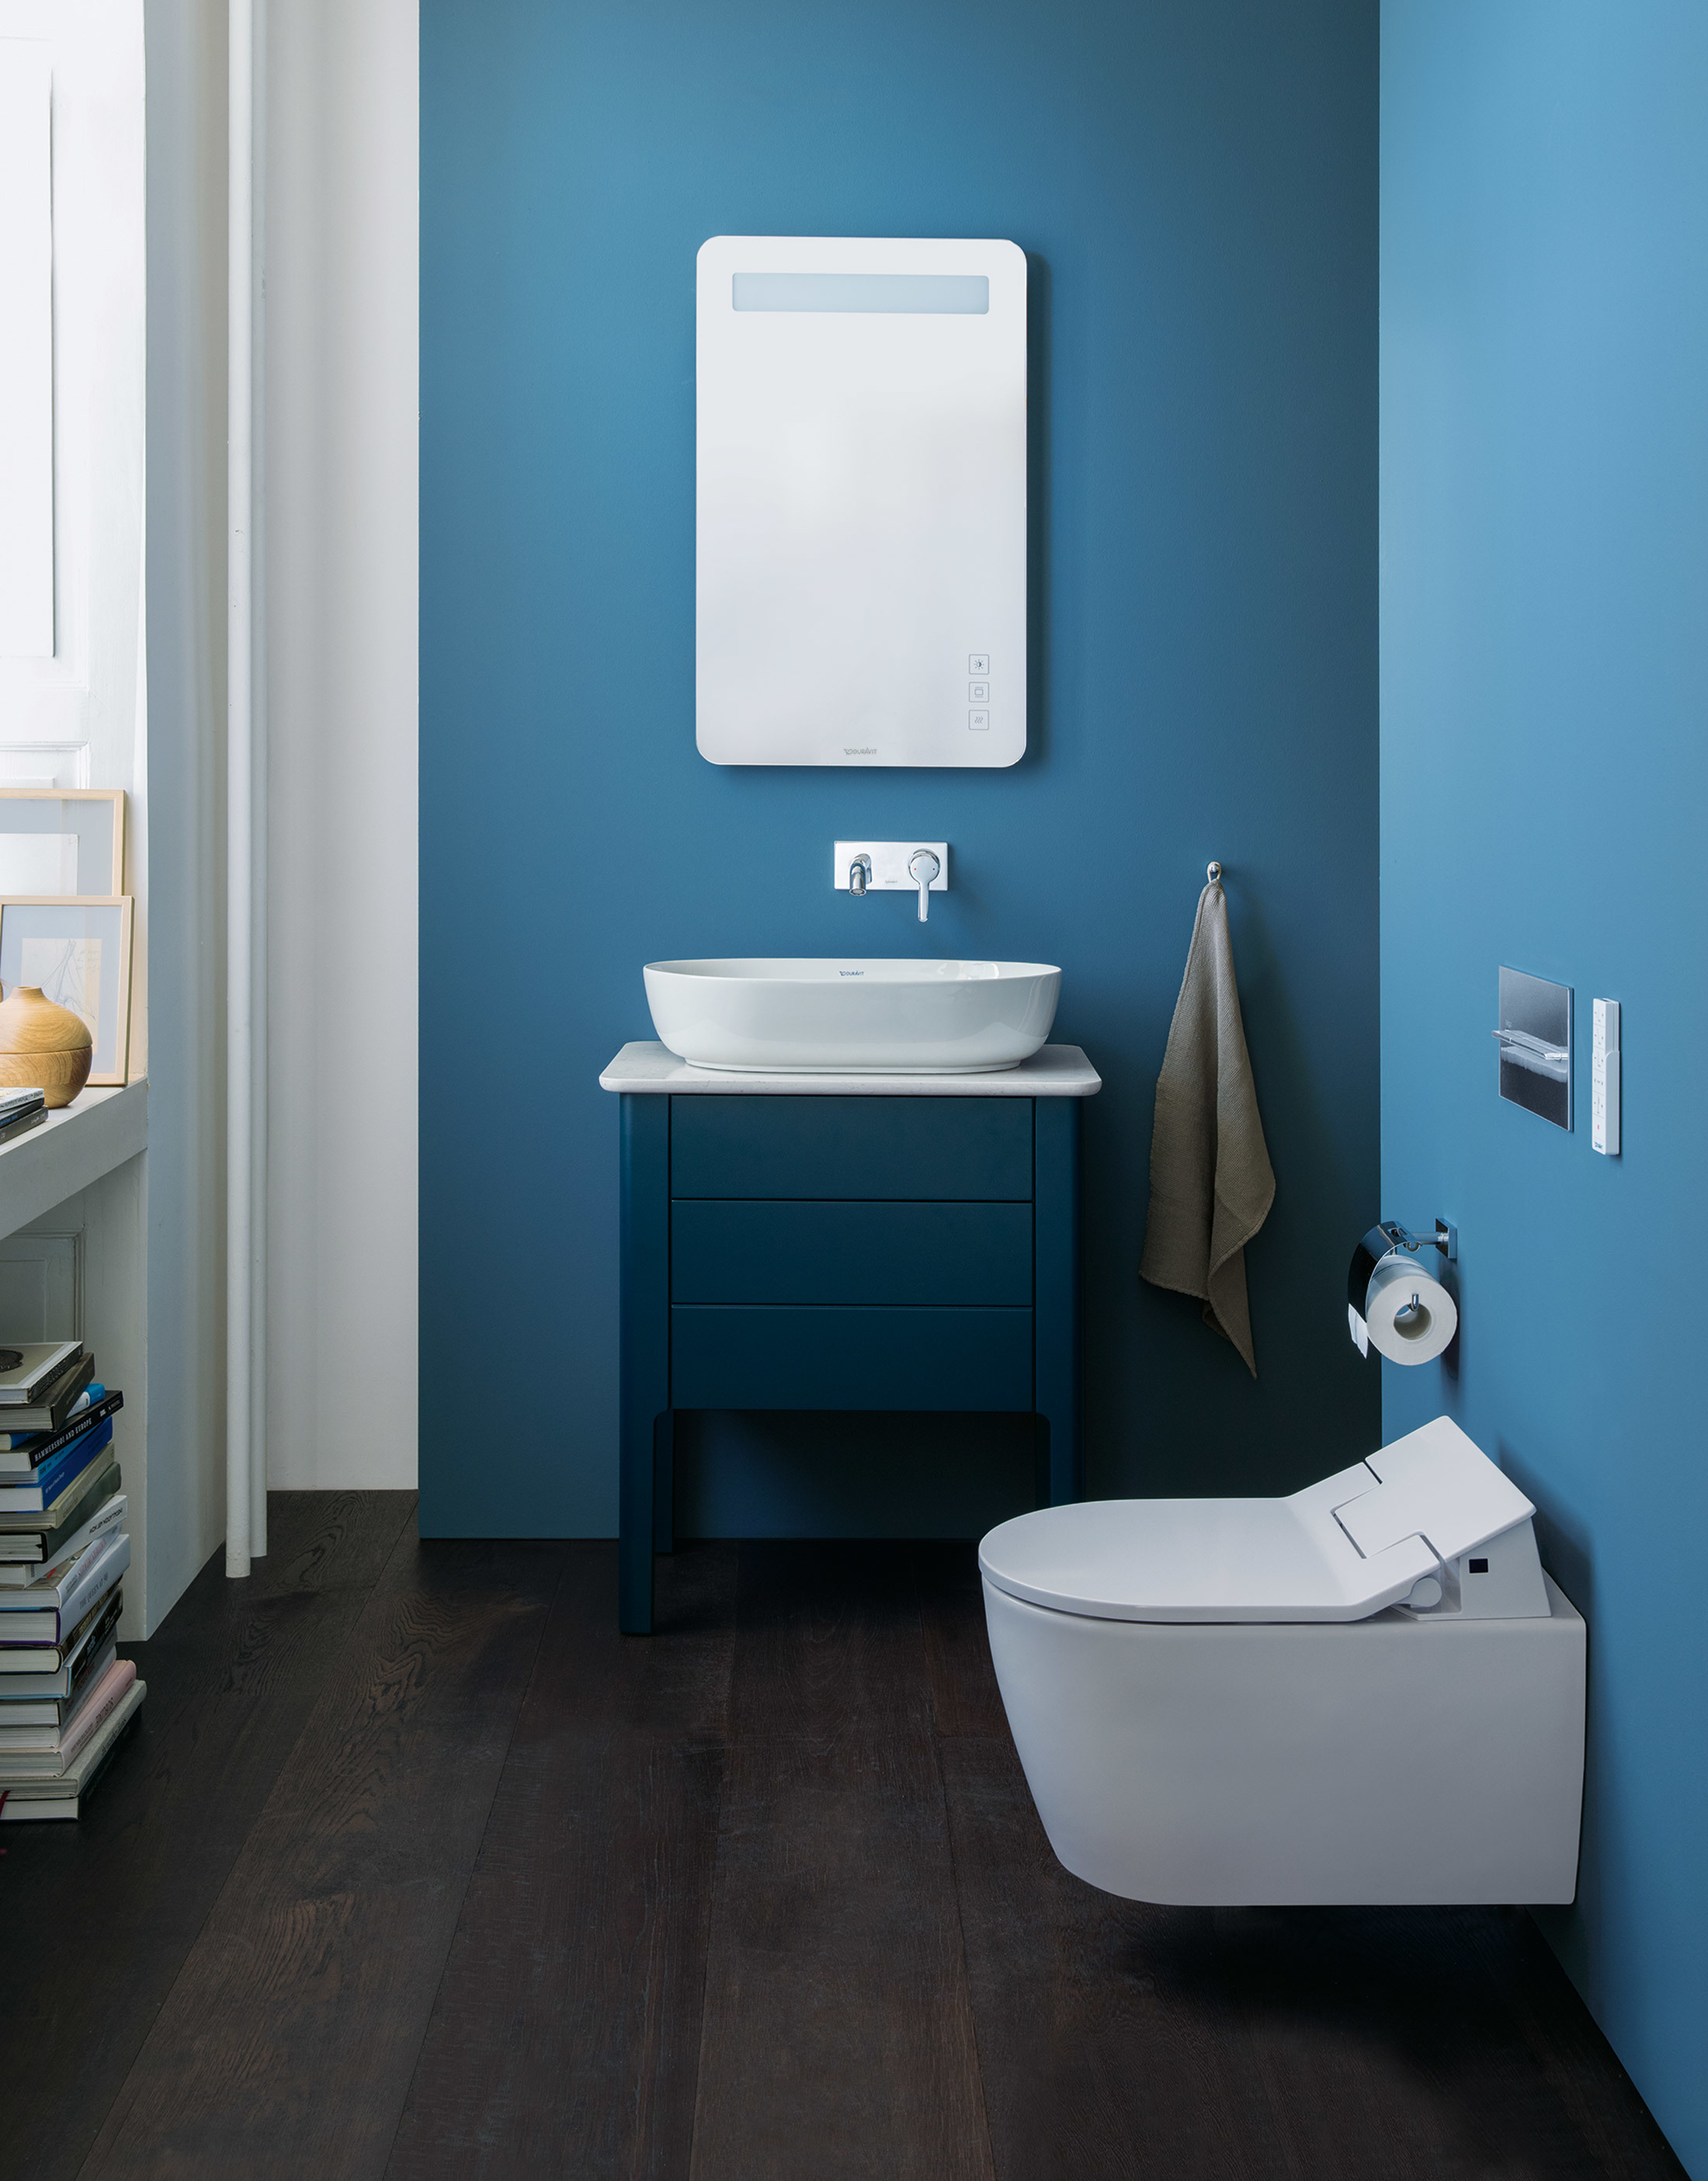 Duravit LUV